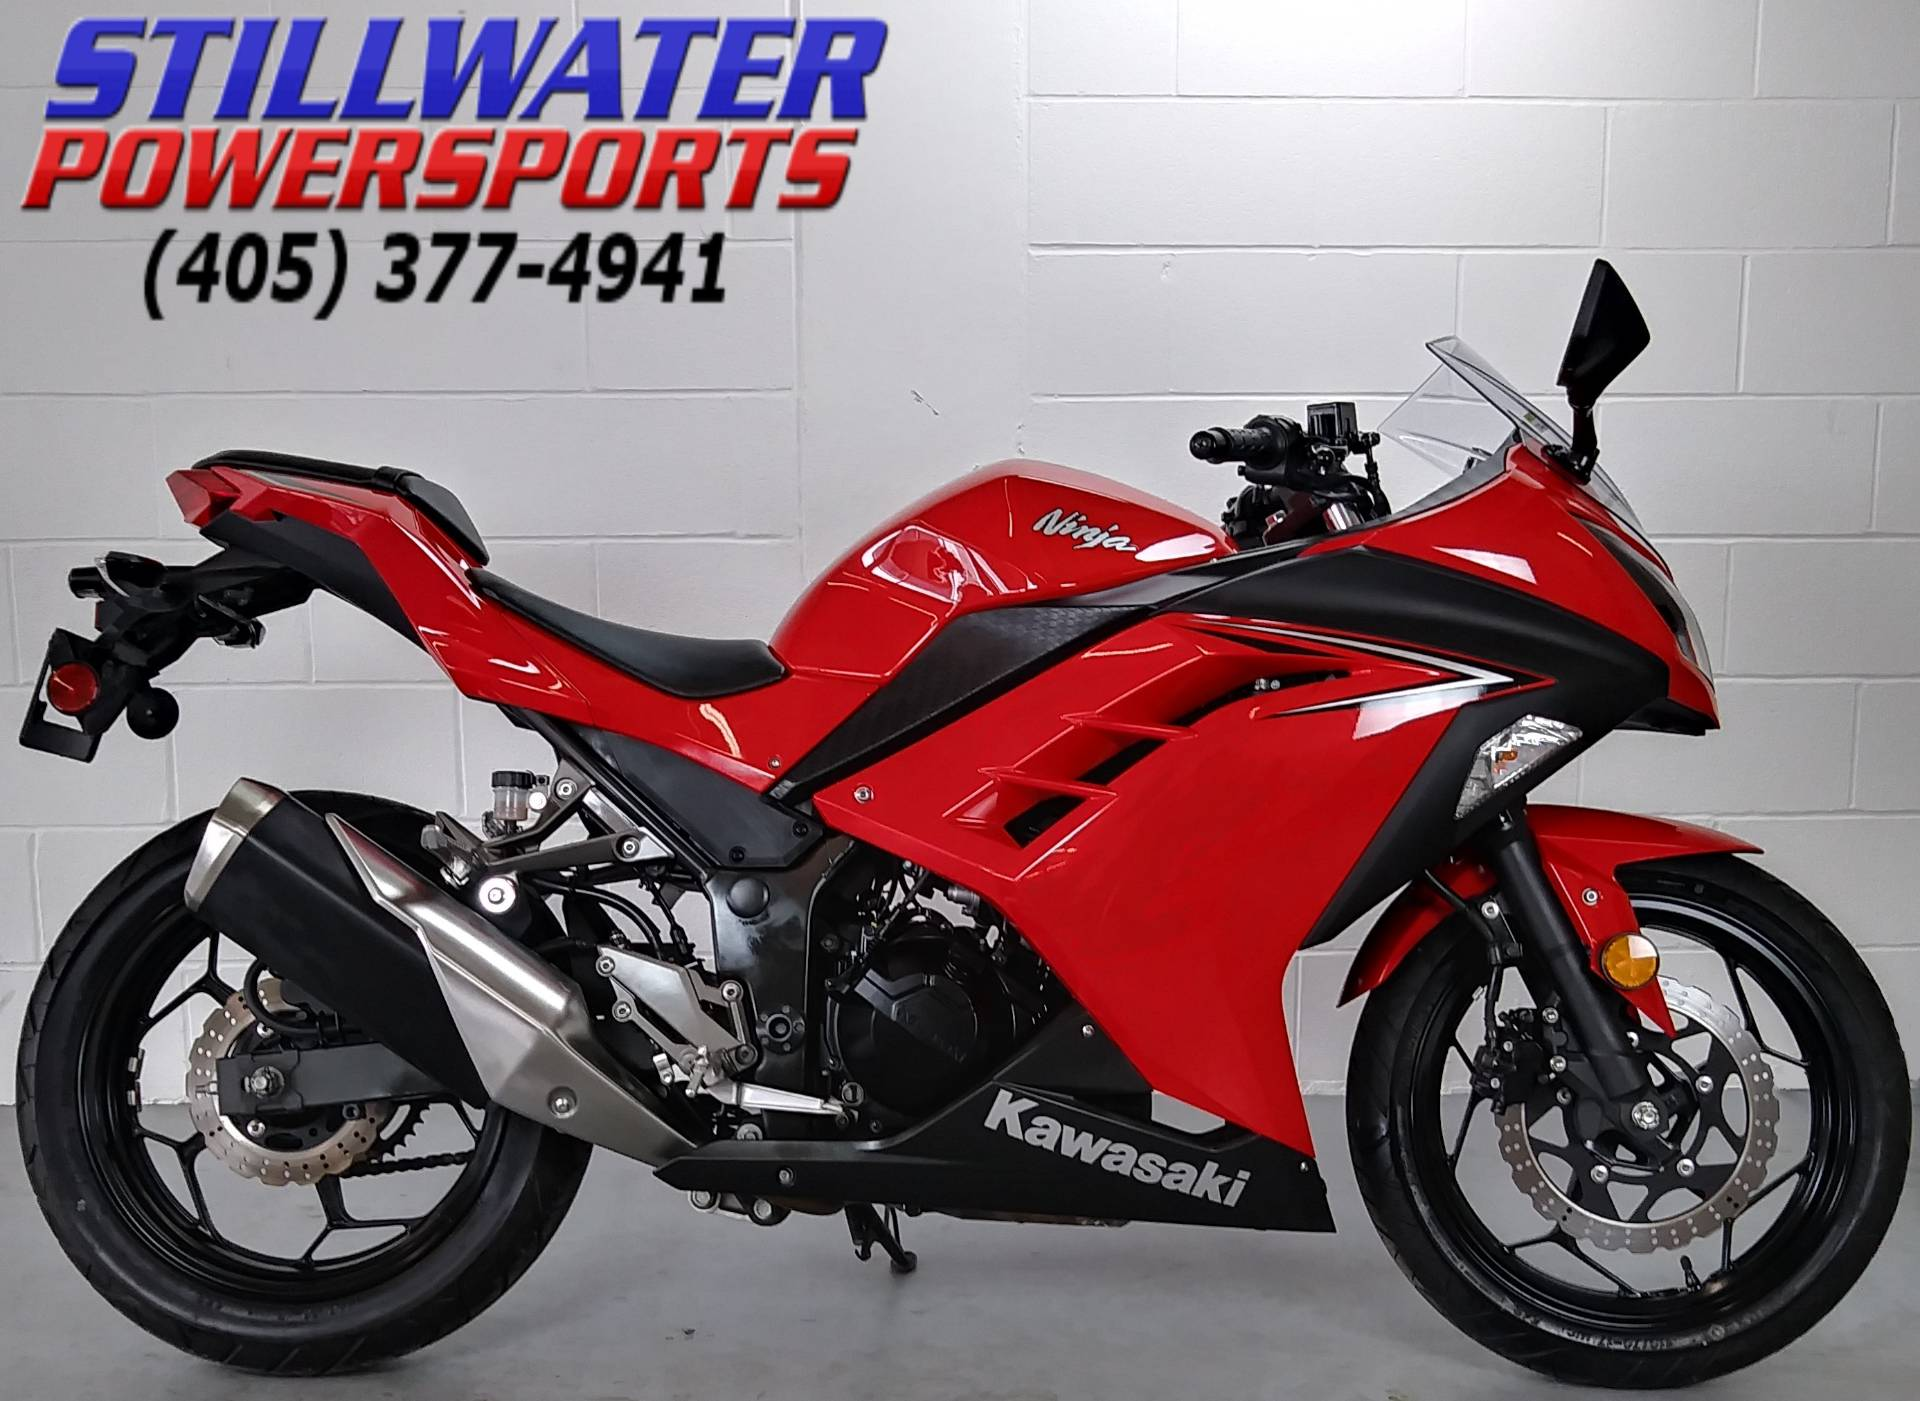 2016 Kawasaki Ninja 300 In Stillwater Oklahoma Photo 1